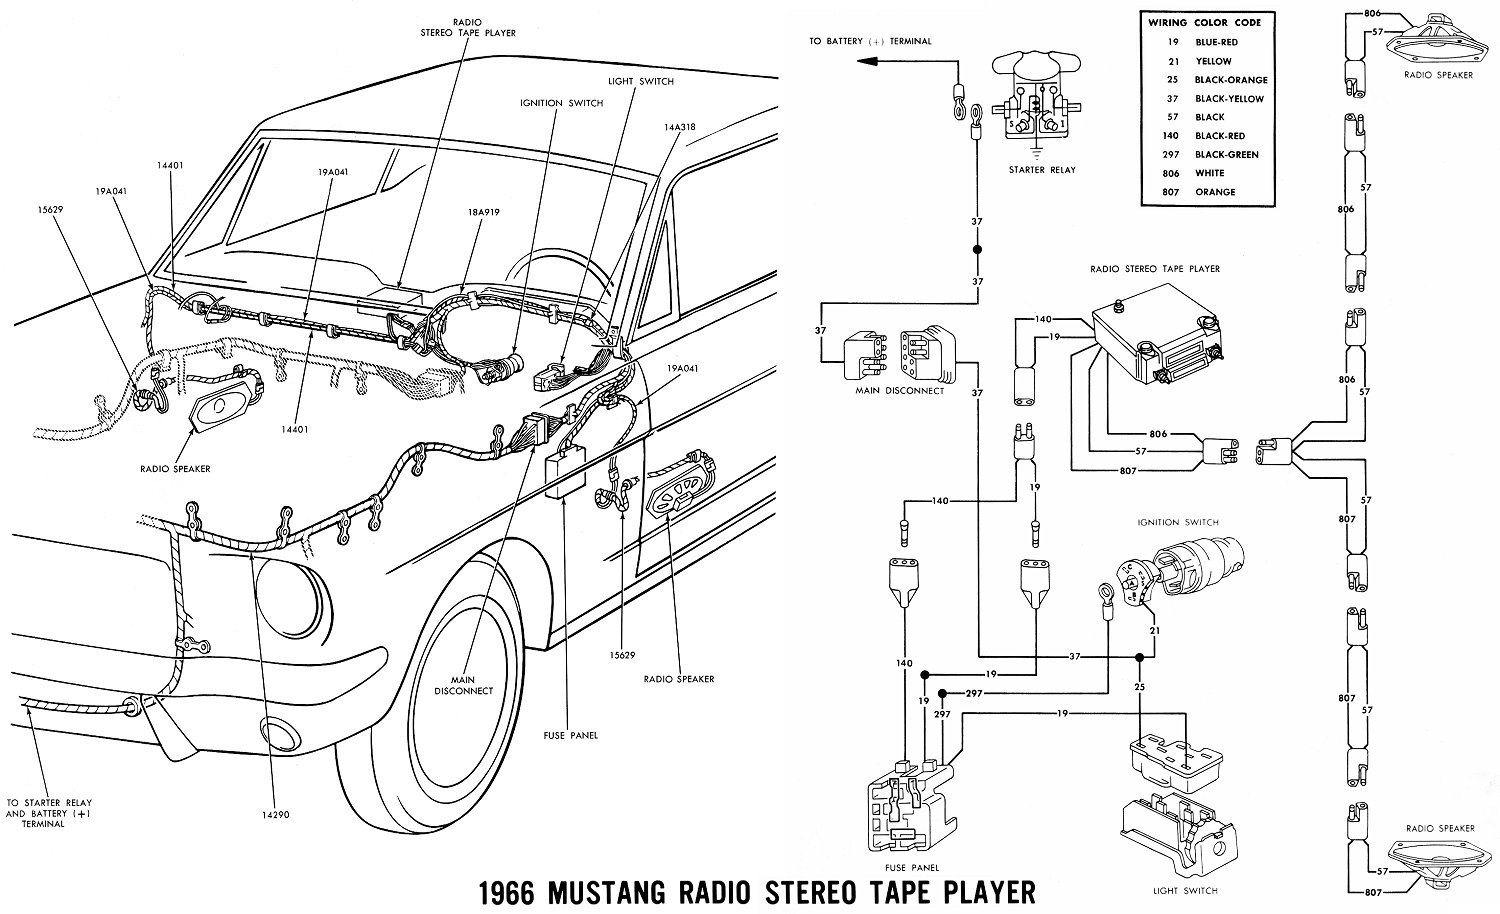 1966 Mustang Wiring Diagrams - Average Joe Restoration on 1970 ford ignition coil, 1970 ford charging system diagram, 1970 ford ignition system,